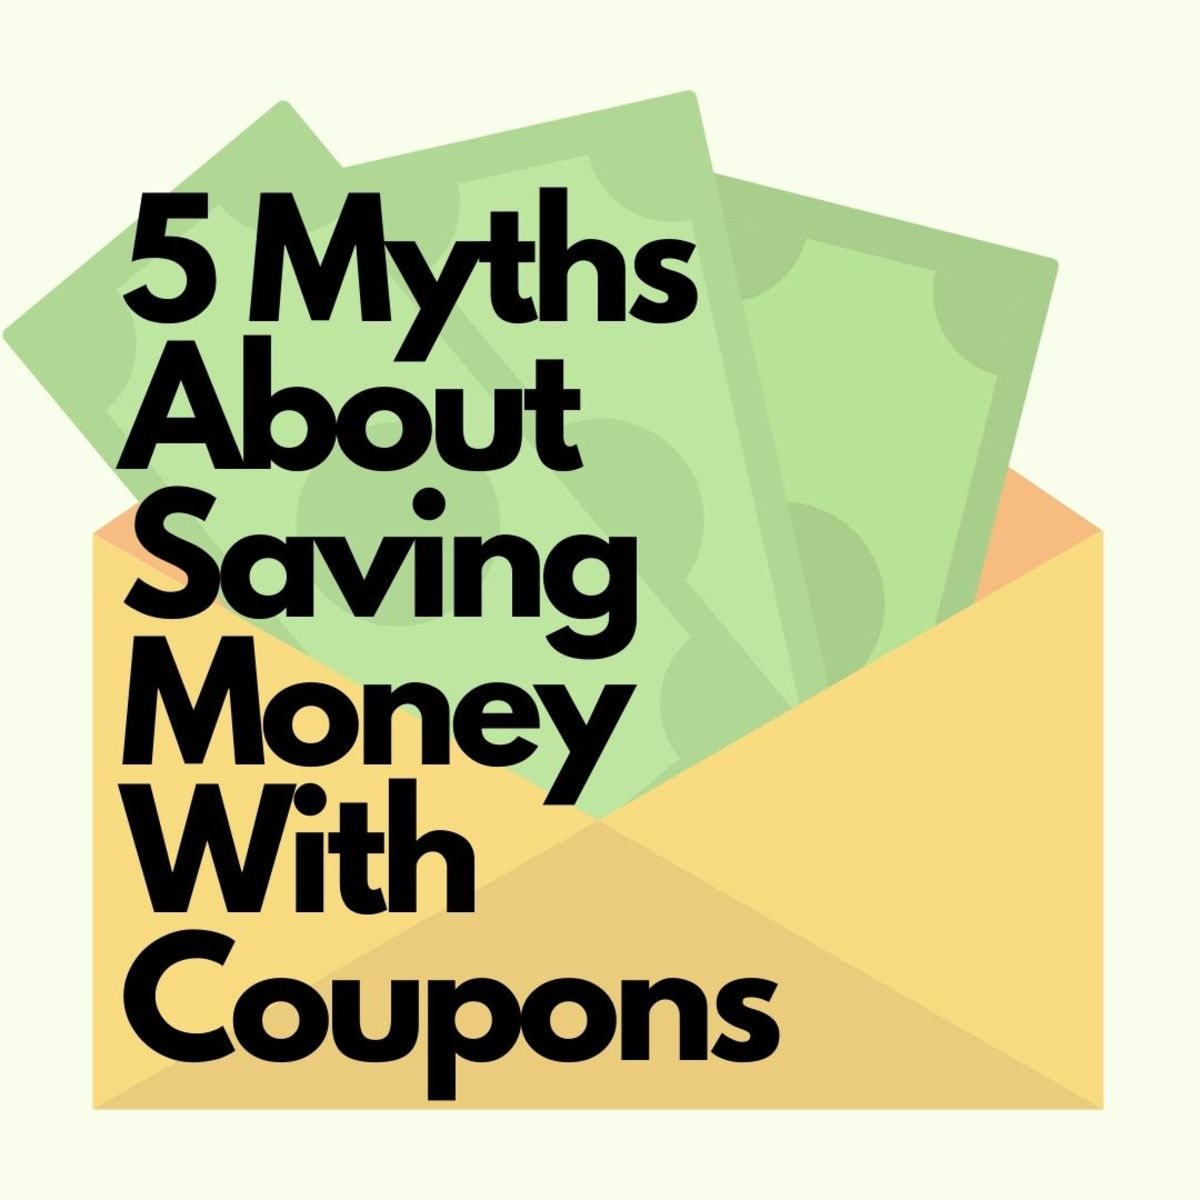 5 Myths About Saving Money With Coupons